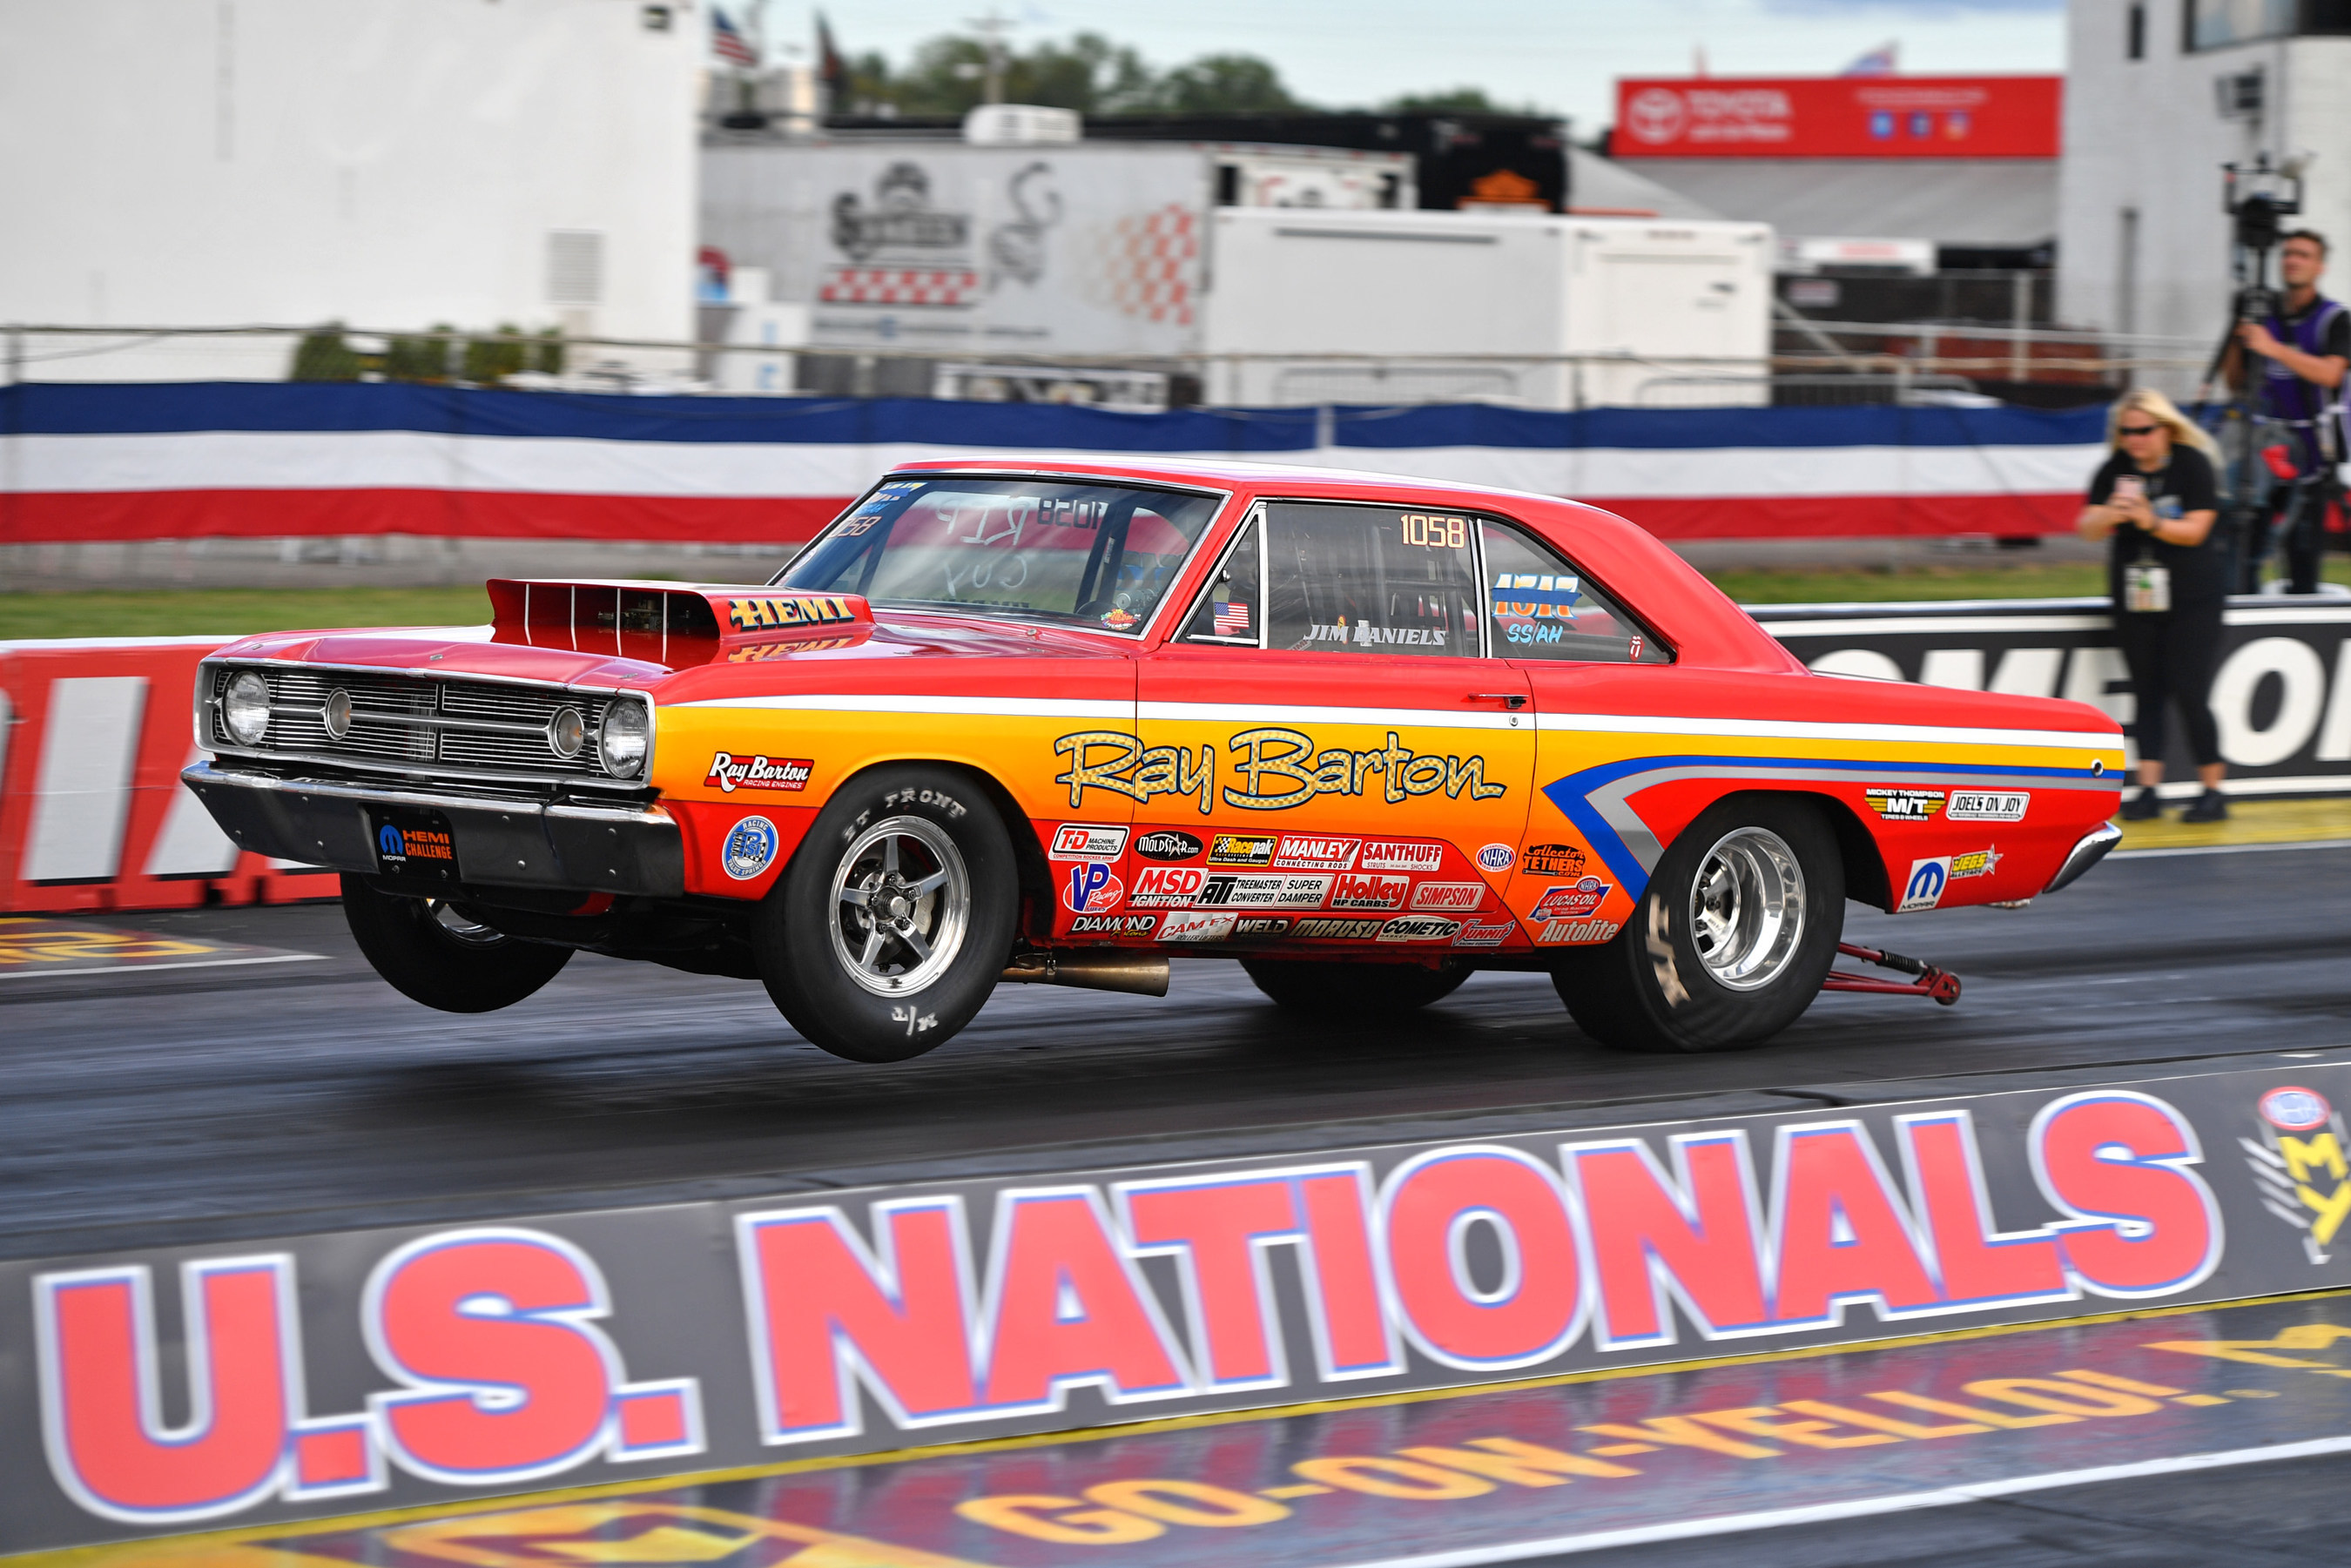 The 19th Annual NHRA Dodge HEMI® Challenge will take place on August 29-30, 2019, at Lucas Oil Raceway at Indianapolis during the NHRA U.S. Nationals. Mopar-powered 1968 Dodge Dart and Plymouth Barracuda Super Stock cars will compete head-to-head in the fan-favorite event.